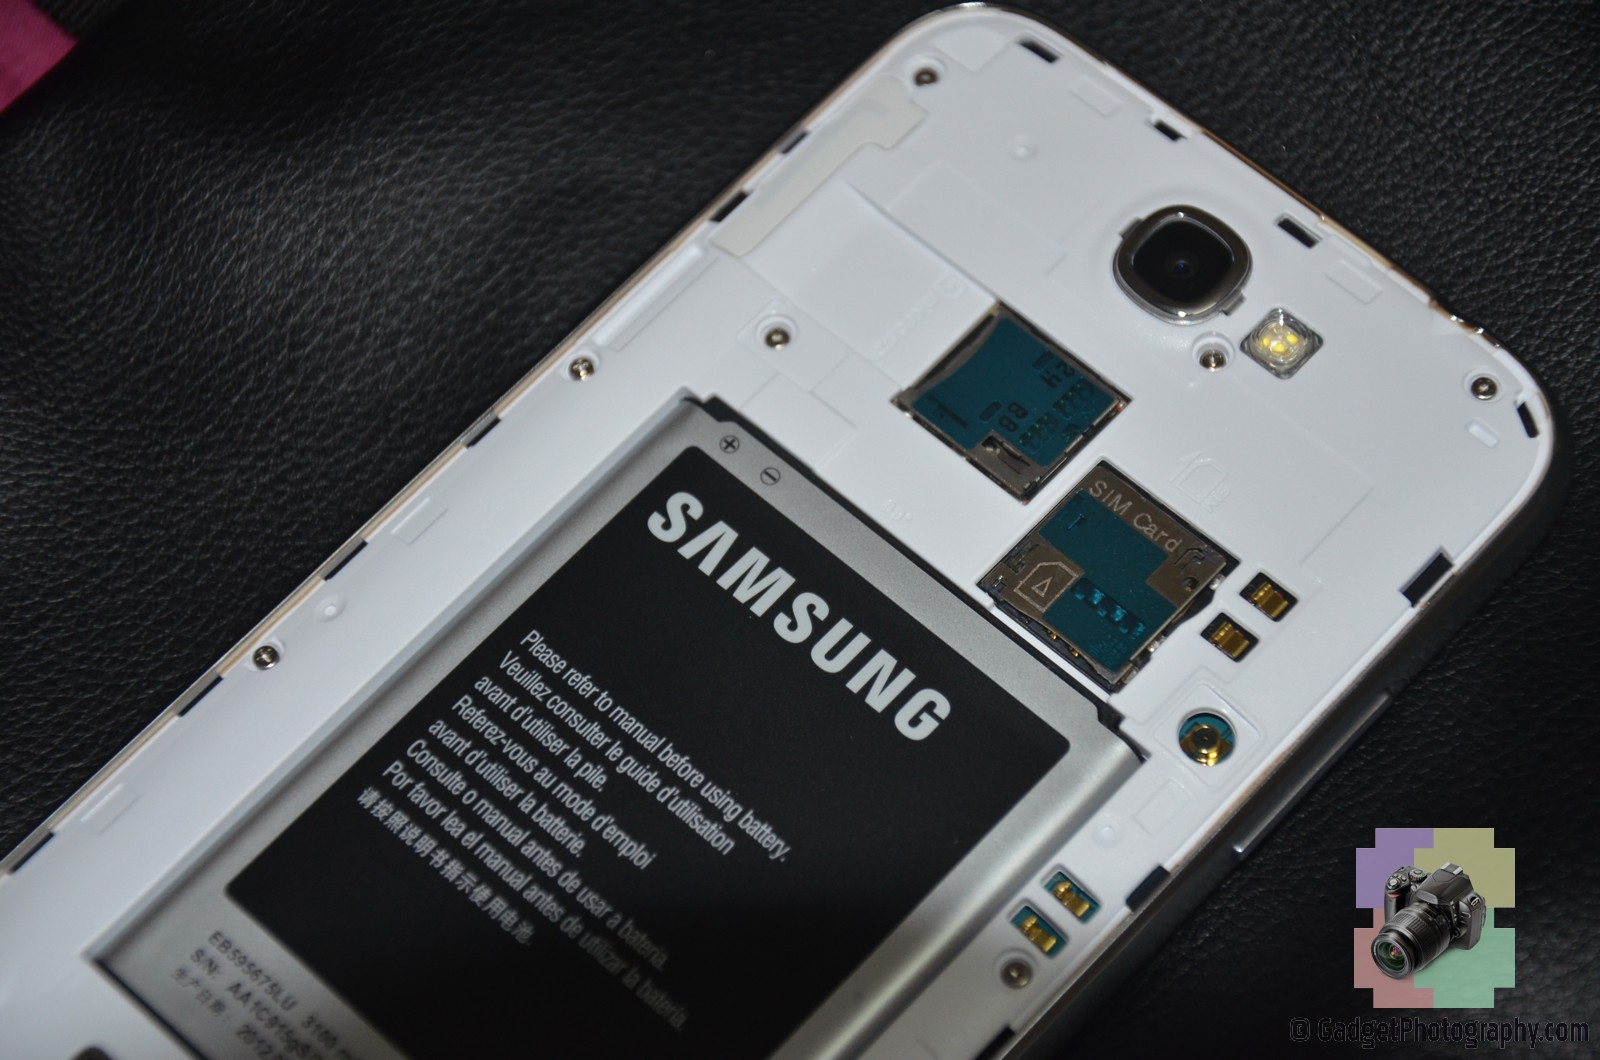 Samsung galaxy note ii n7100 android phone hands on review android galaxy note ii back part ccuart Image collections